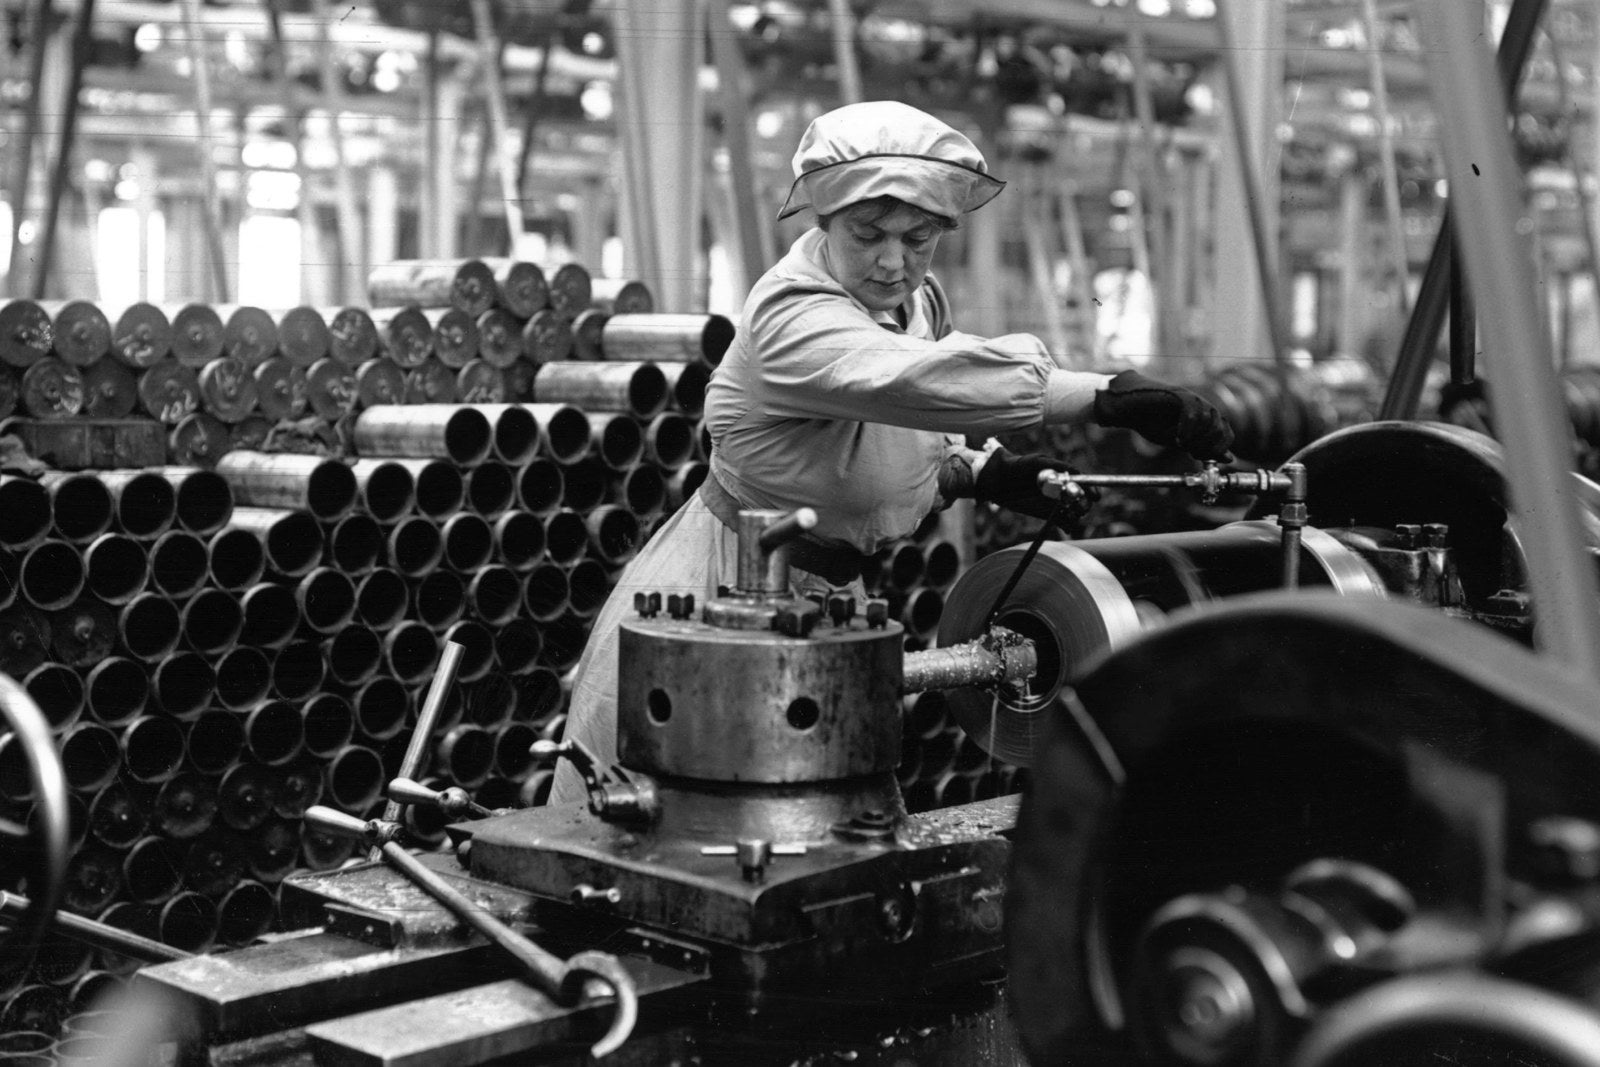 A munitions worker operating a machine in an armaments factory, circa 1915.